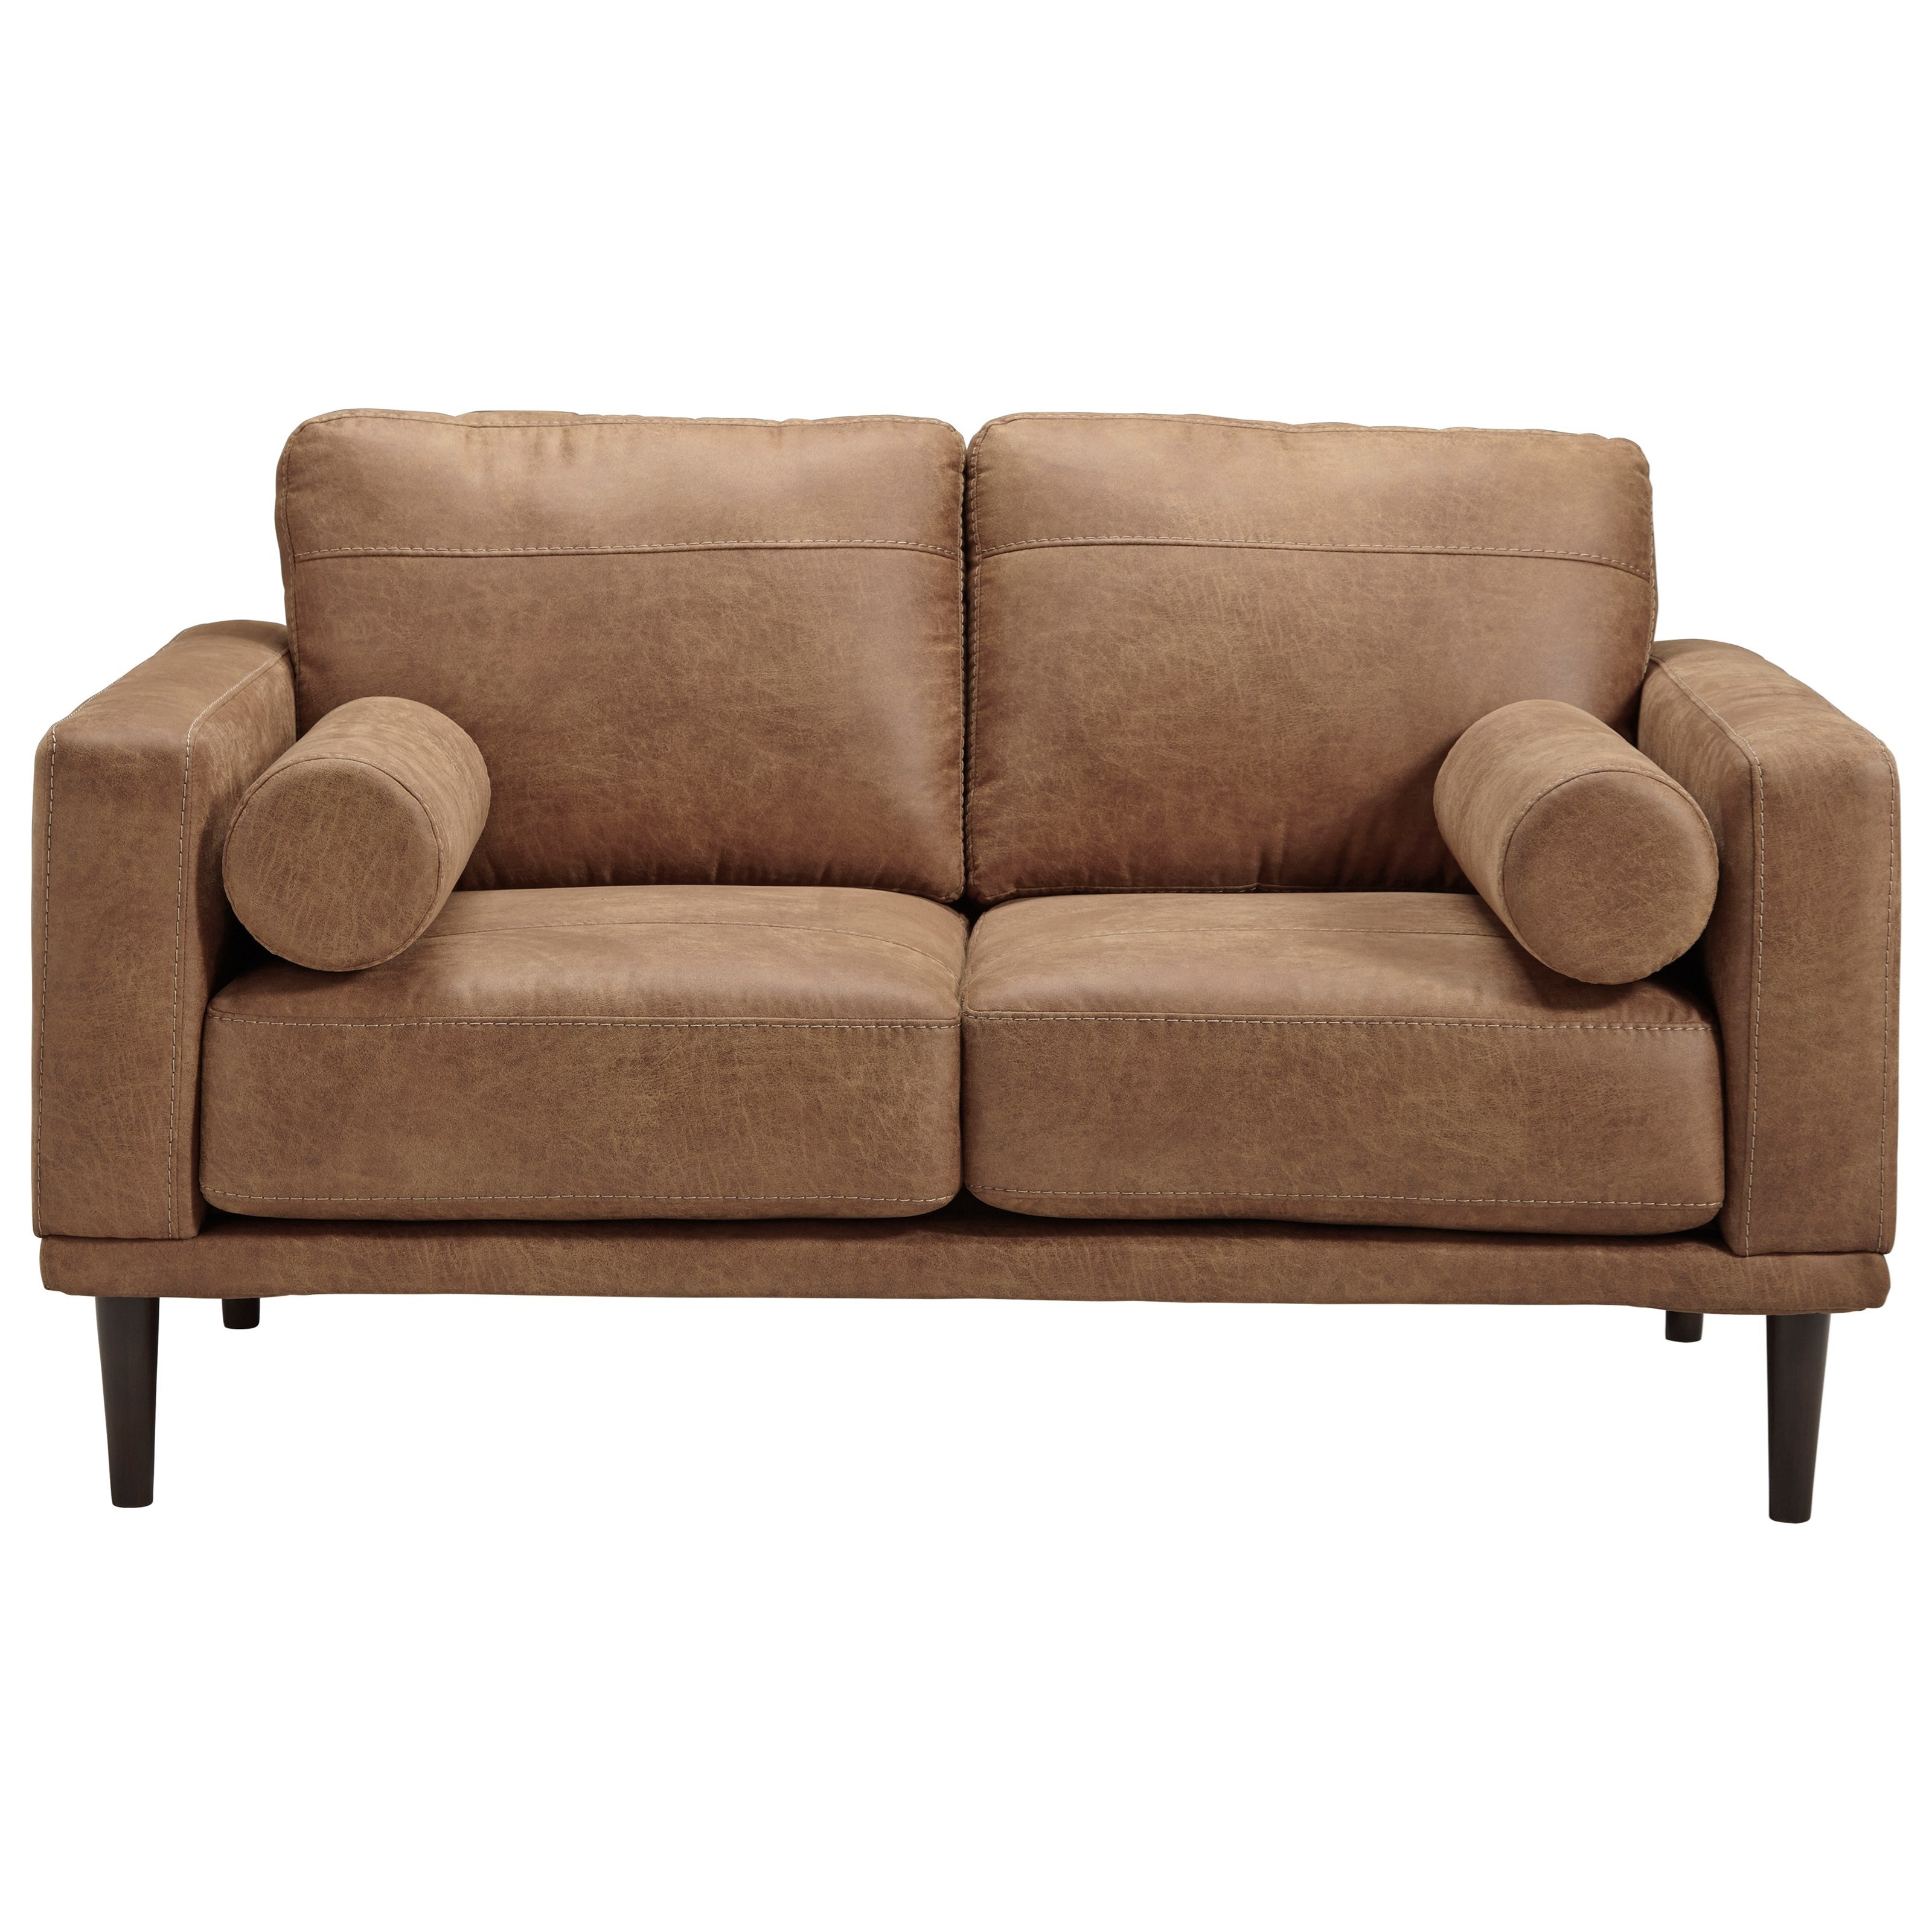 Arroyo RTA Loveseat by Signature Design by Ashley at Zak's Warehouse Clearance Center